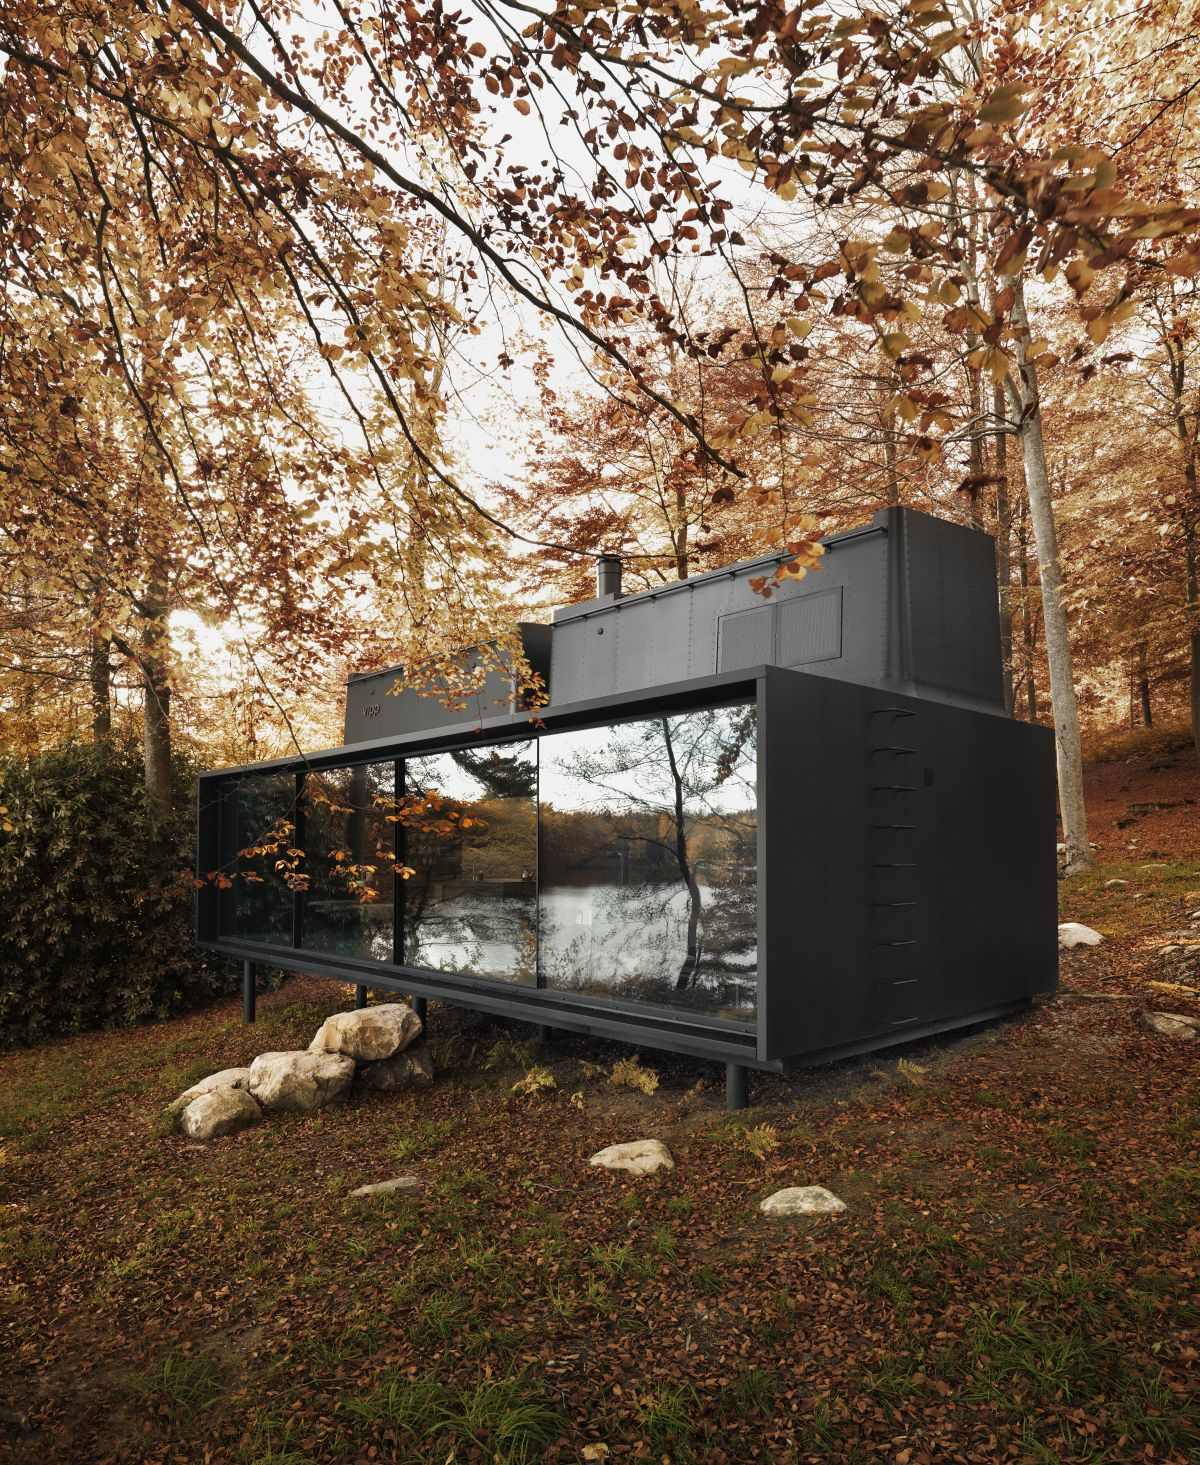 The exterior of the cabin is minimalist and made of metal, featuring a dark gray color which contrasts which just about any environment